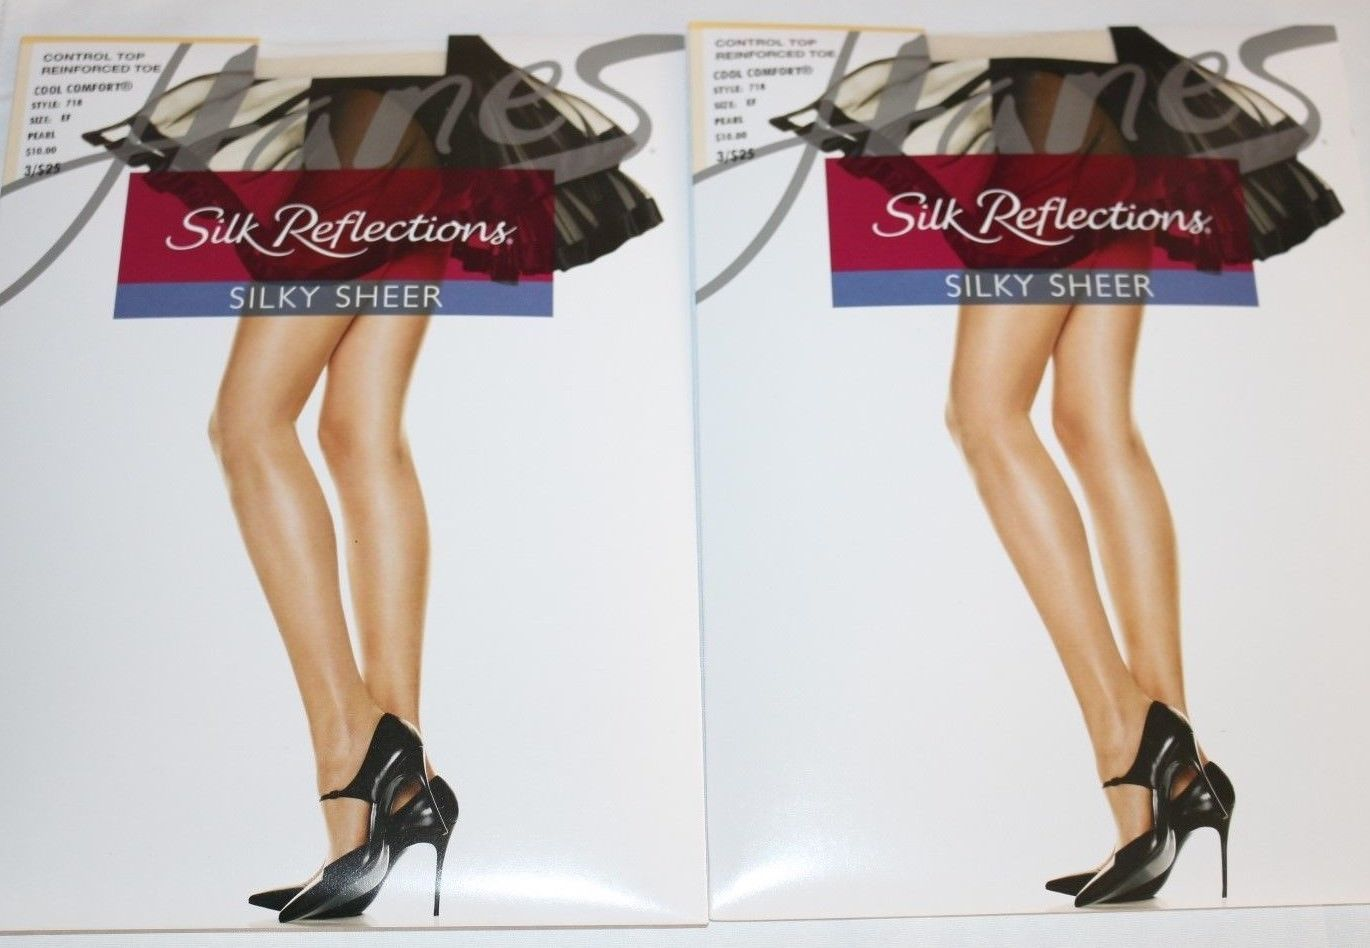 097f42e763422 S l1600. S l1600. Previous. Hanes Silk Reflections Size EF Pearl Control  Top Reinforced Toe ...